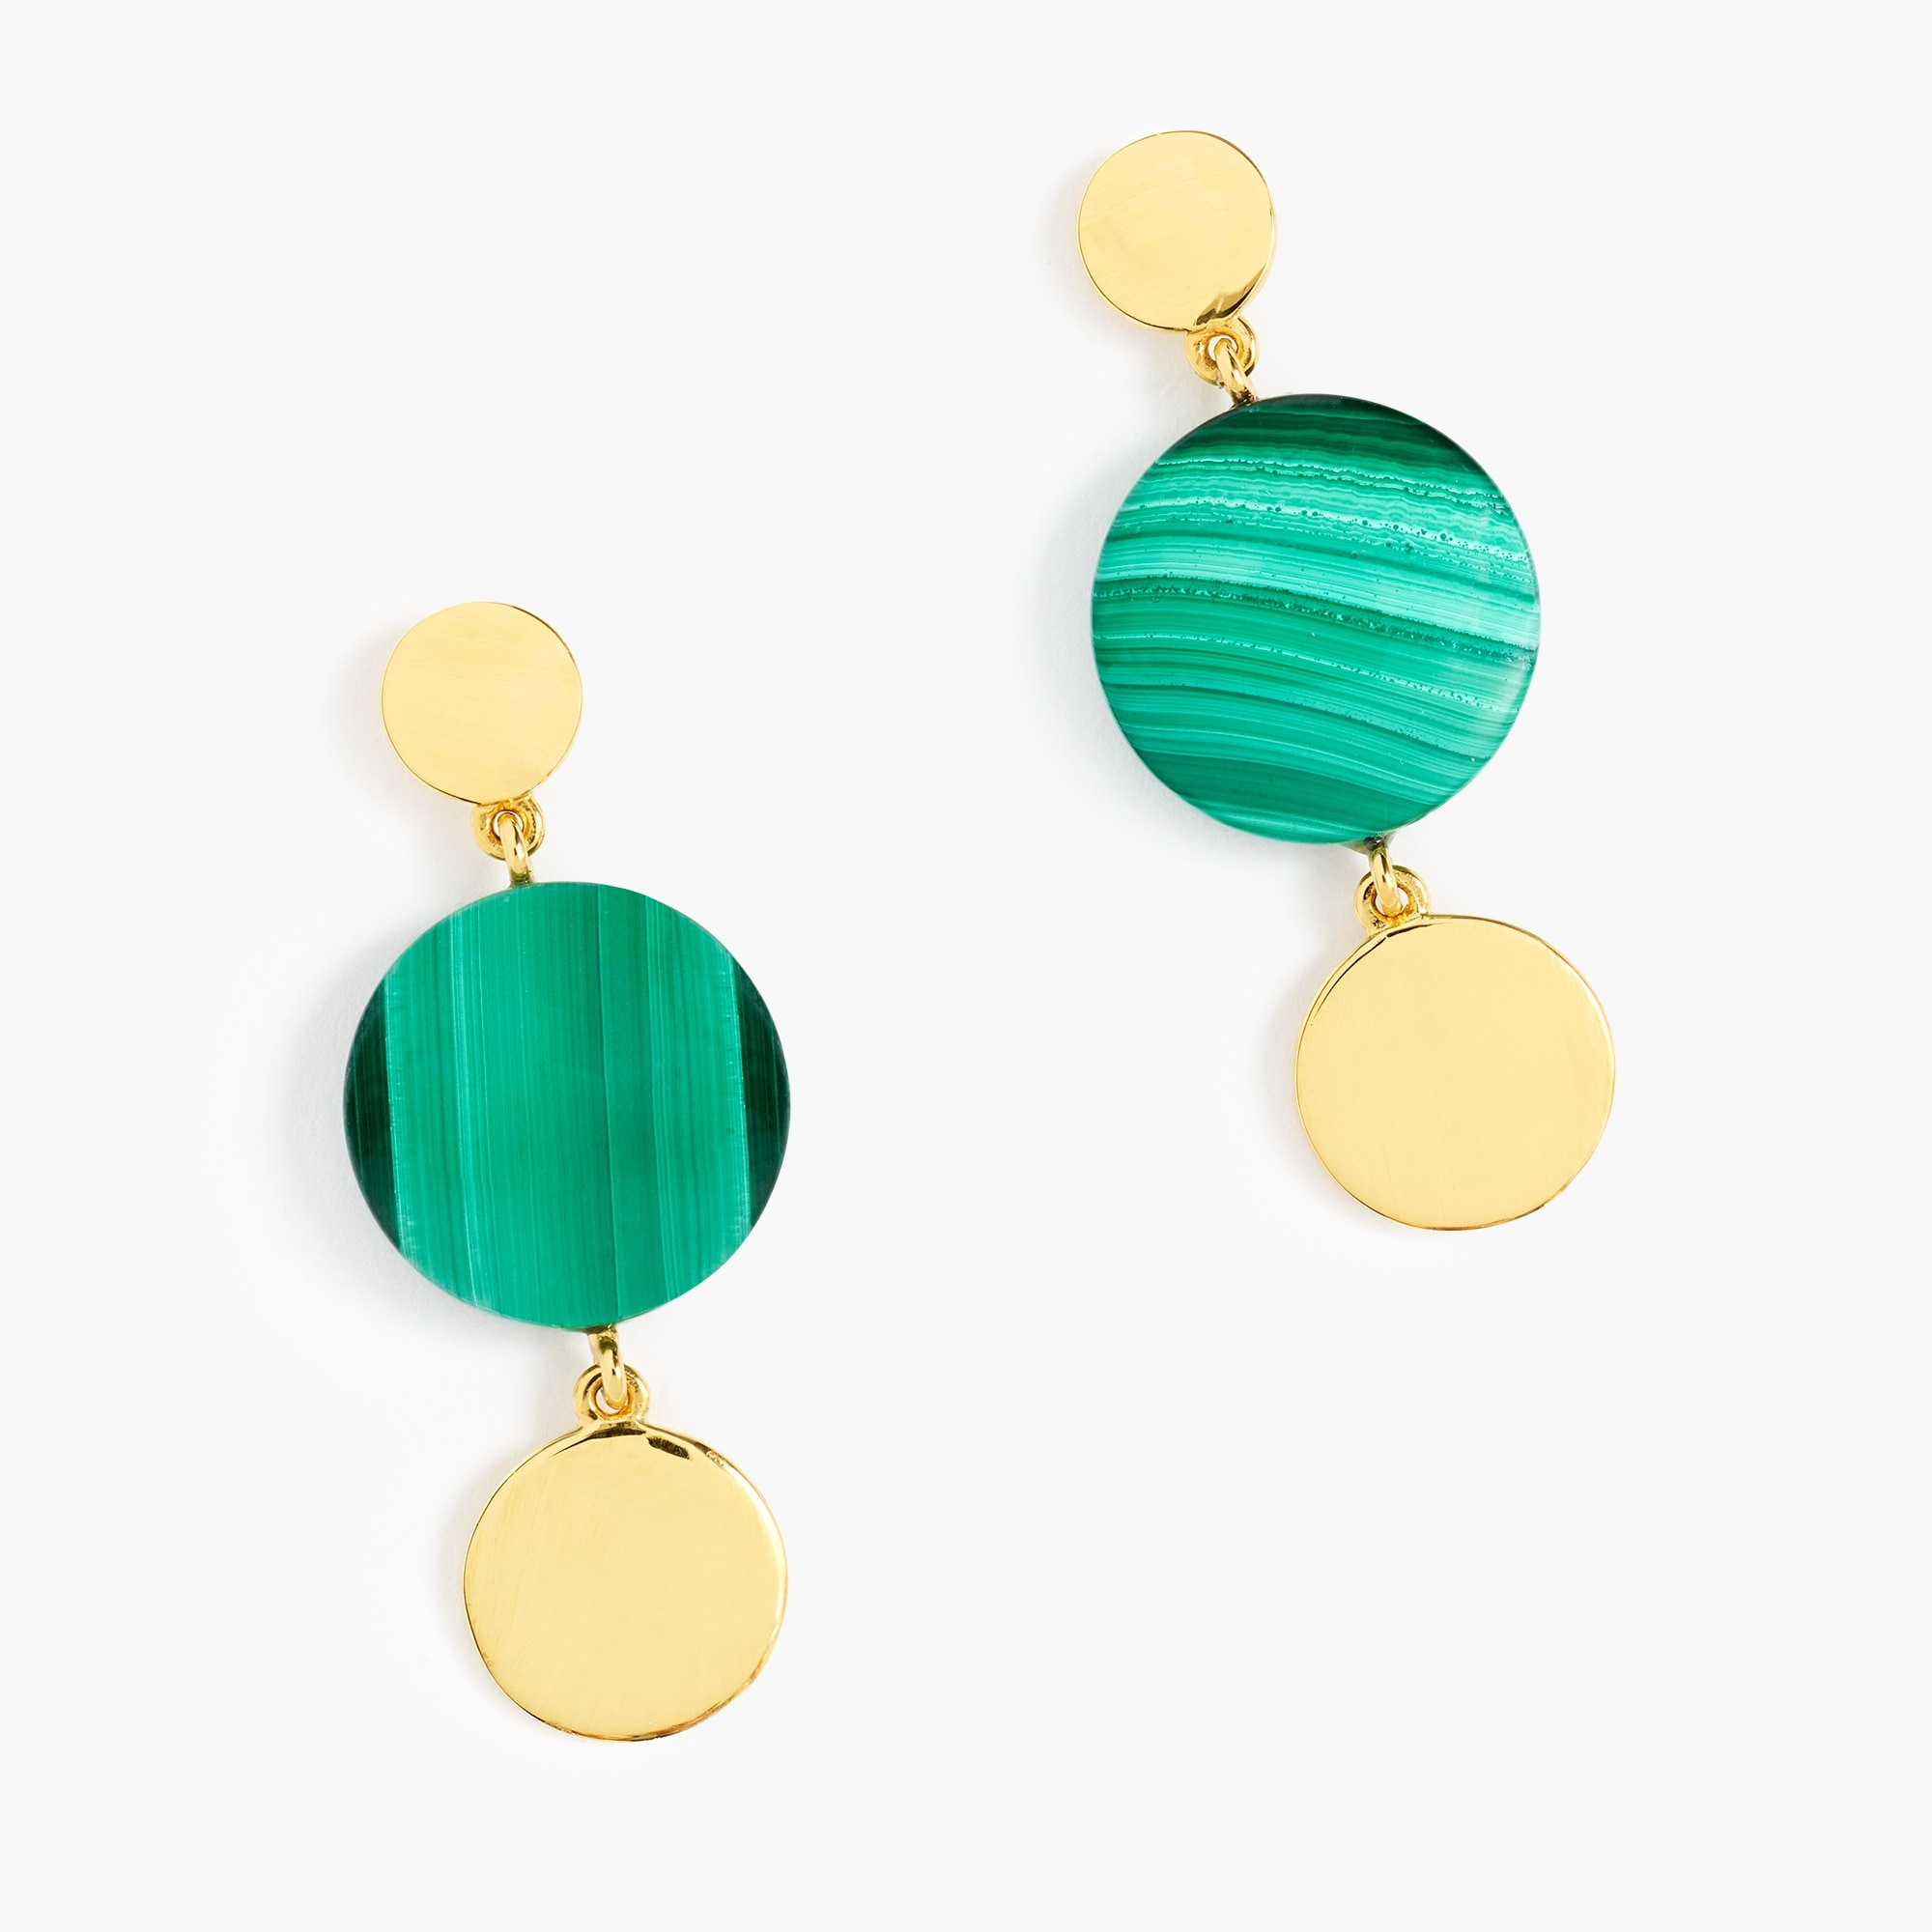 womens Demi-fine 14k gold-plated malachite earrings